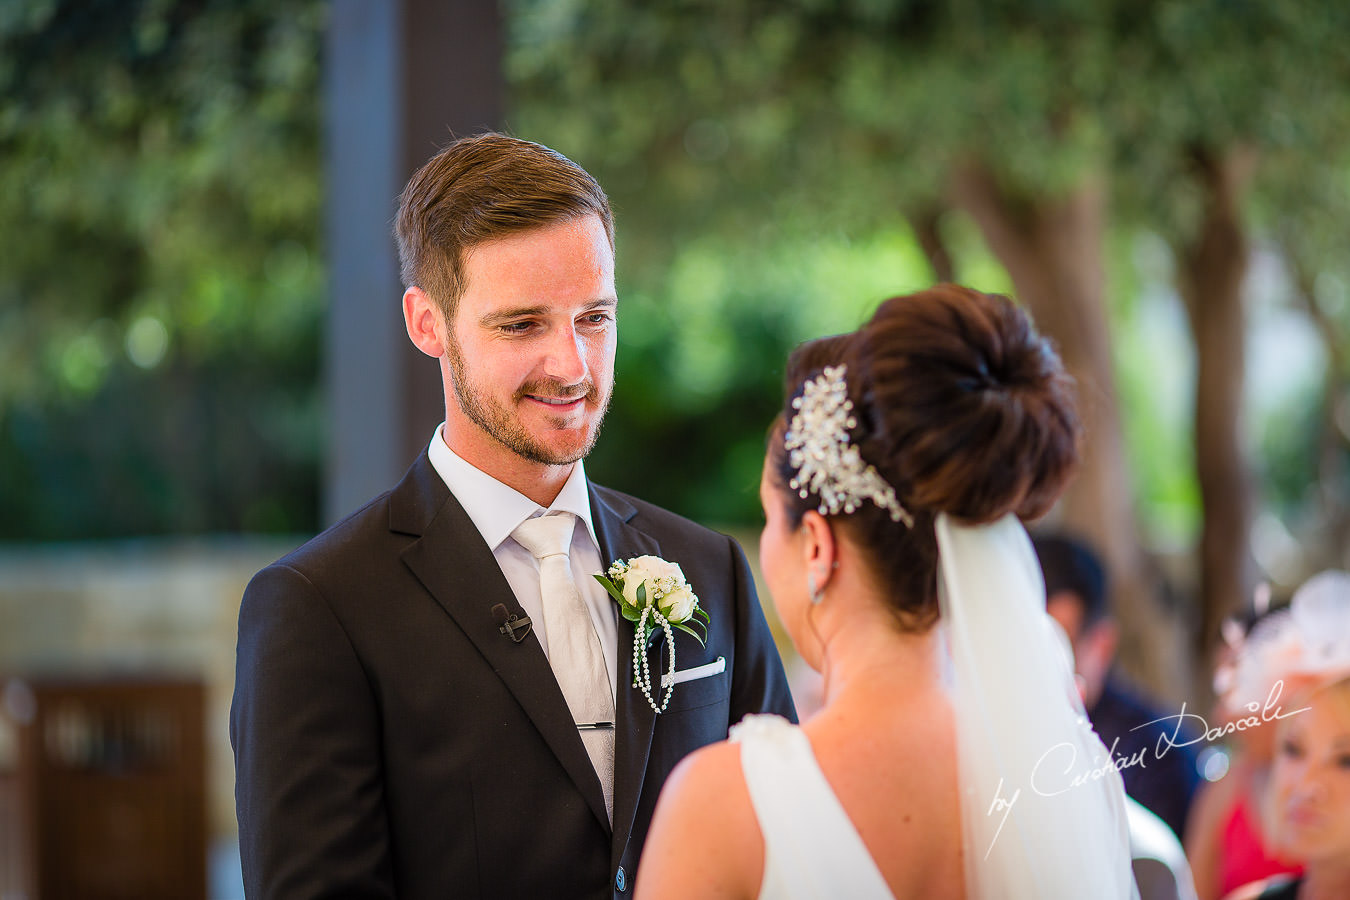 Beautiful moments captured by Cristian Dascalu during an elegant Aphrodite Hills Wedding in Cyprus.